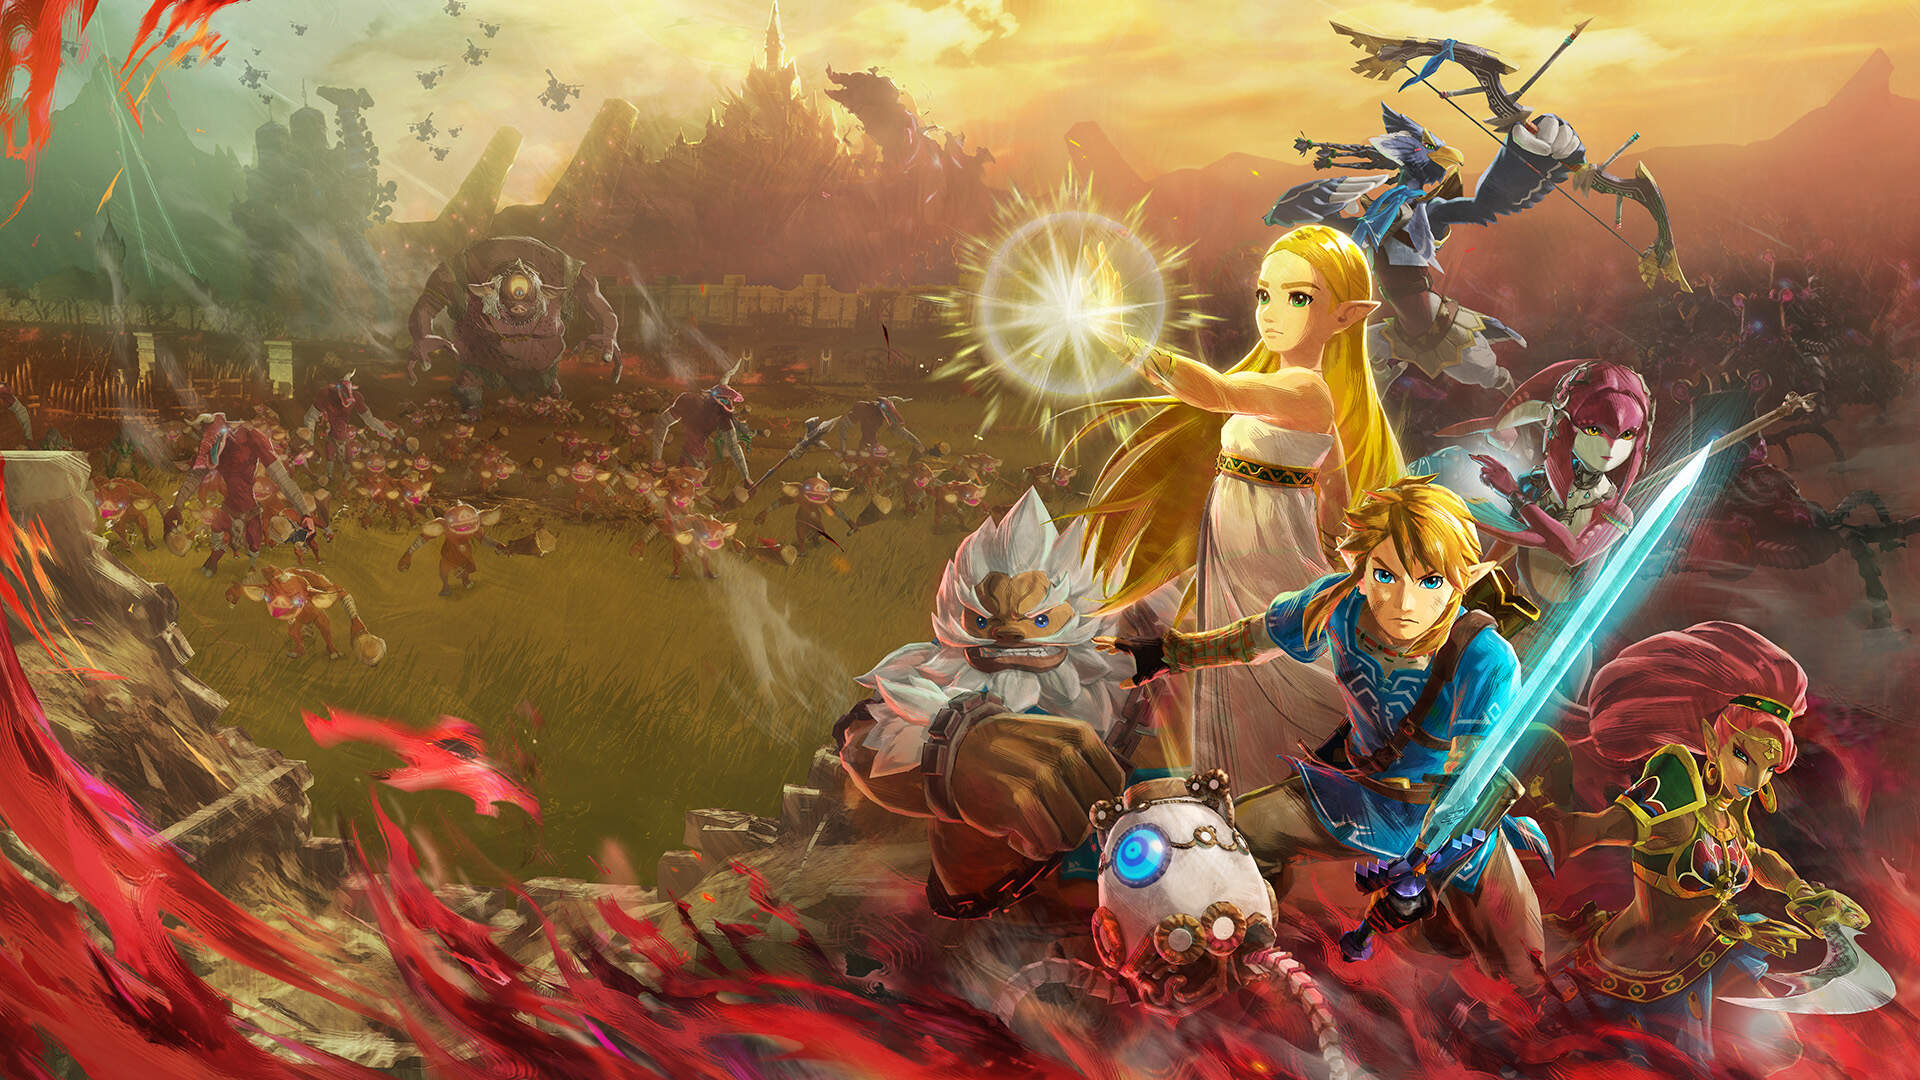 The New Trailer for the Legend of Zelda: Age of Calamity Might Contain a Link to the Past